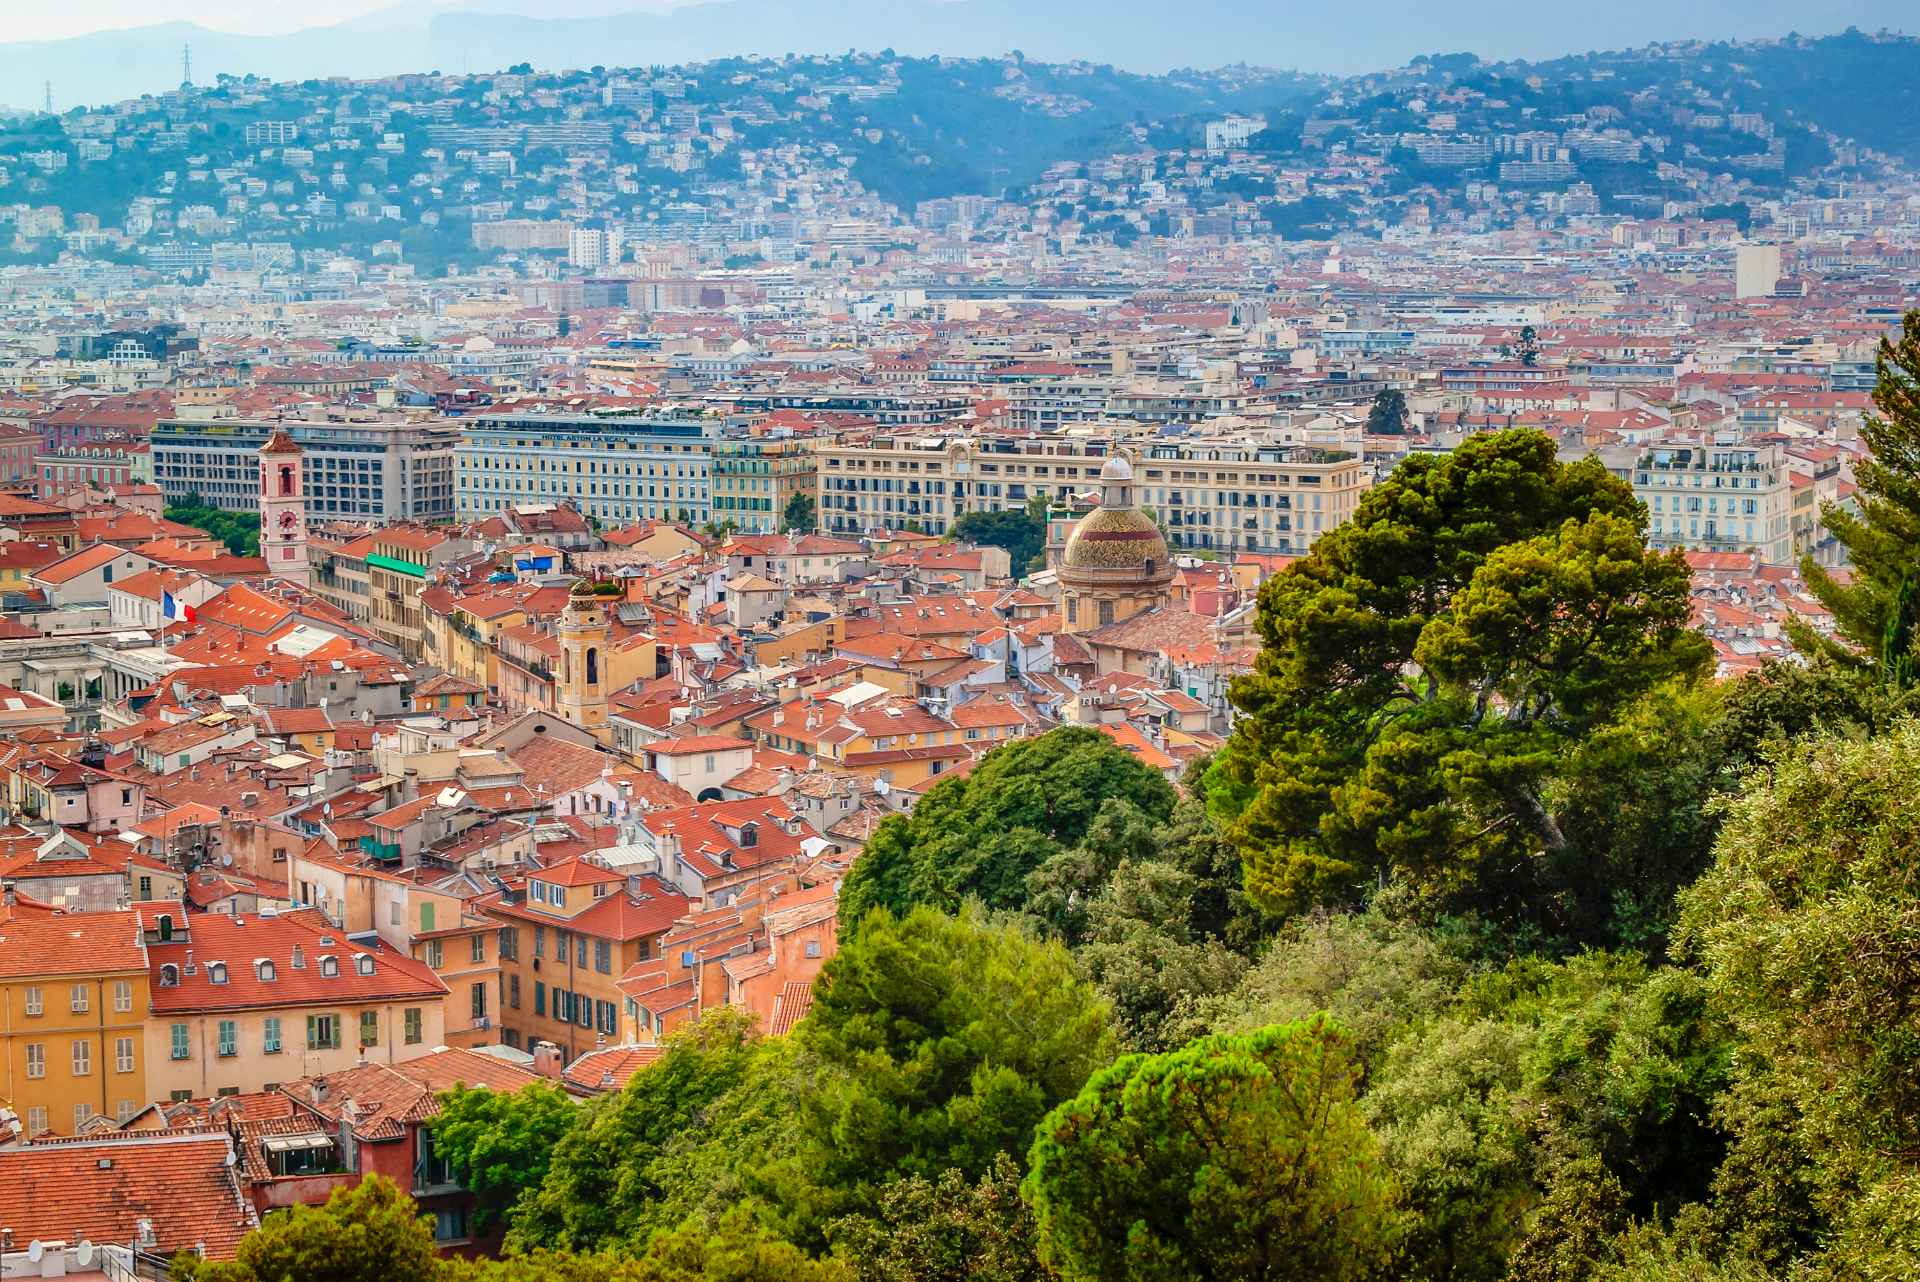 views-from-parc-du-mont-boron-over-trees-onto-orange-rooftops-of-city-of-nice